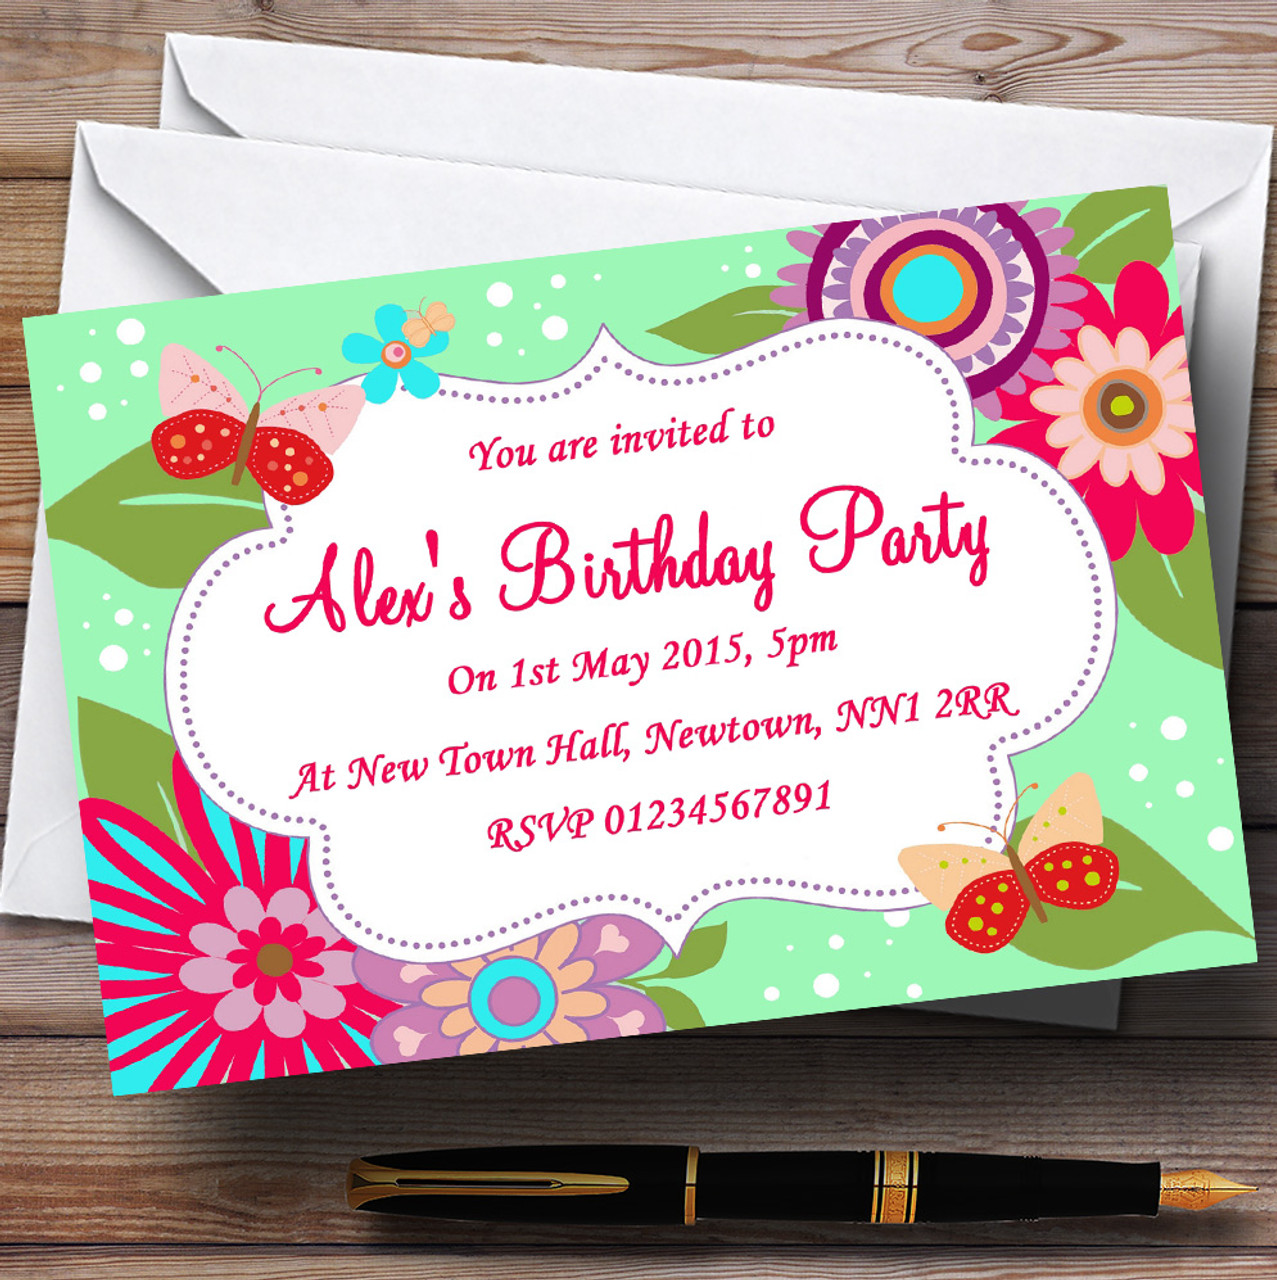 Flowers butterflies pretty personalised birthday party invitations flowers butterflies pretty personalised birthday party invitations stopboris Choice Image